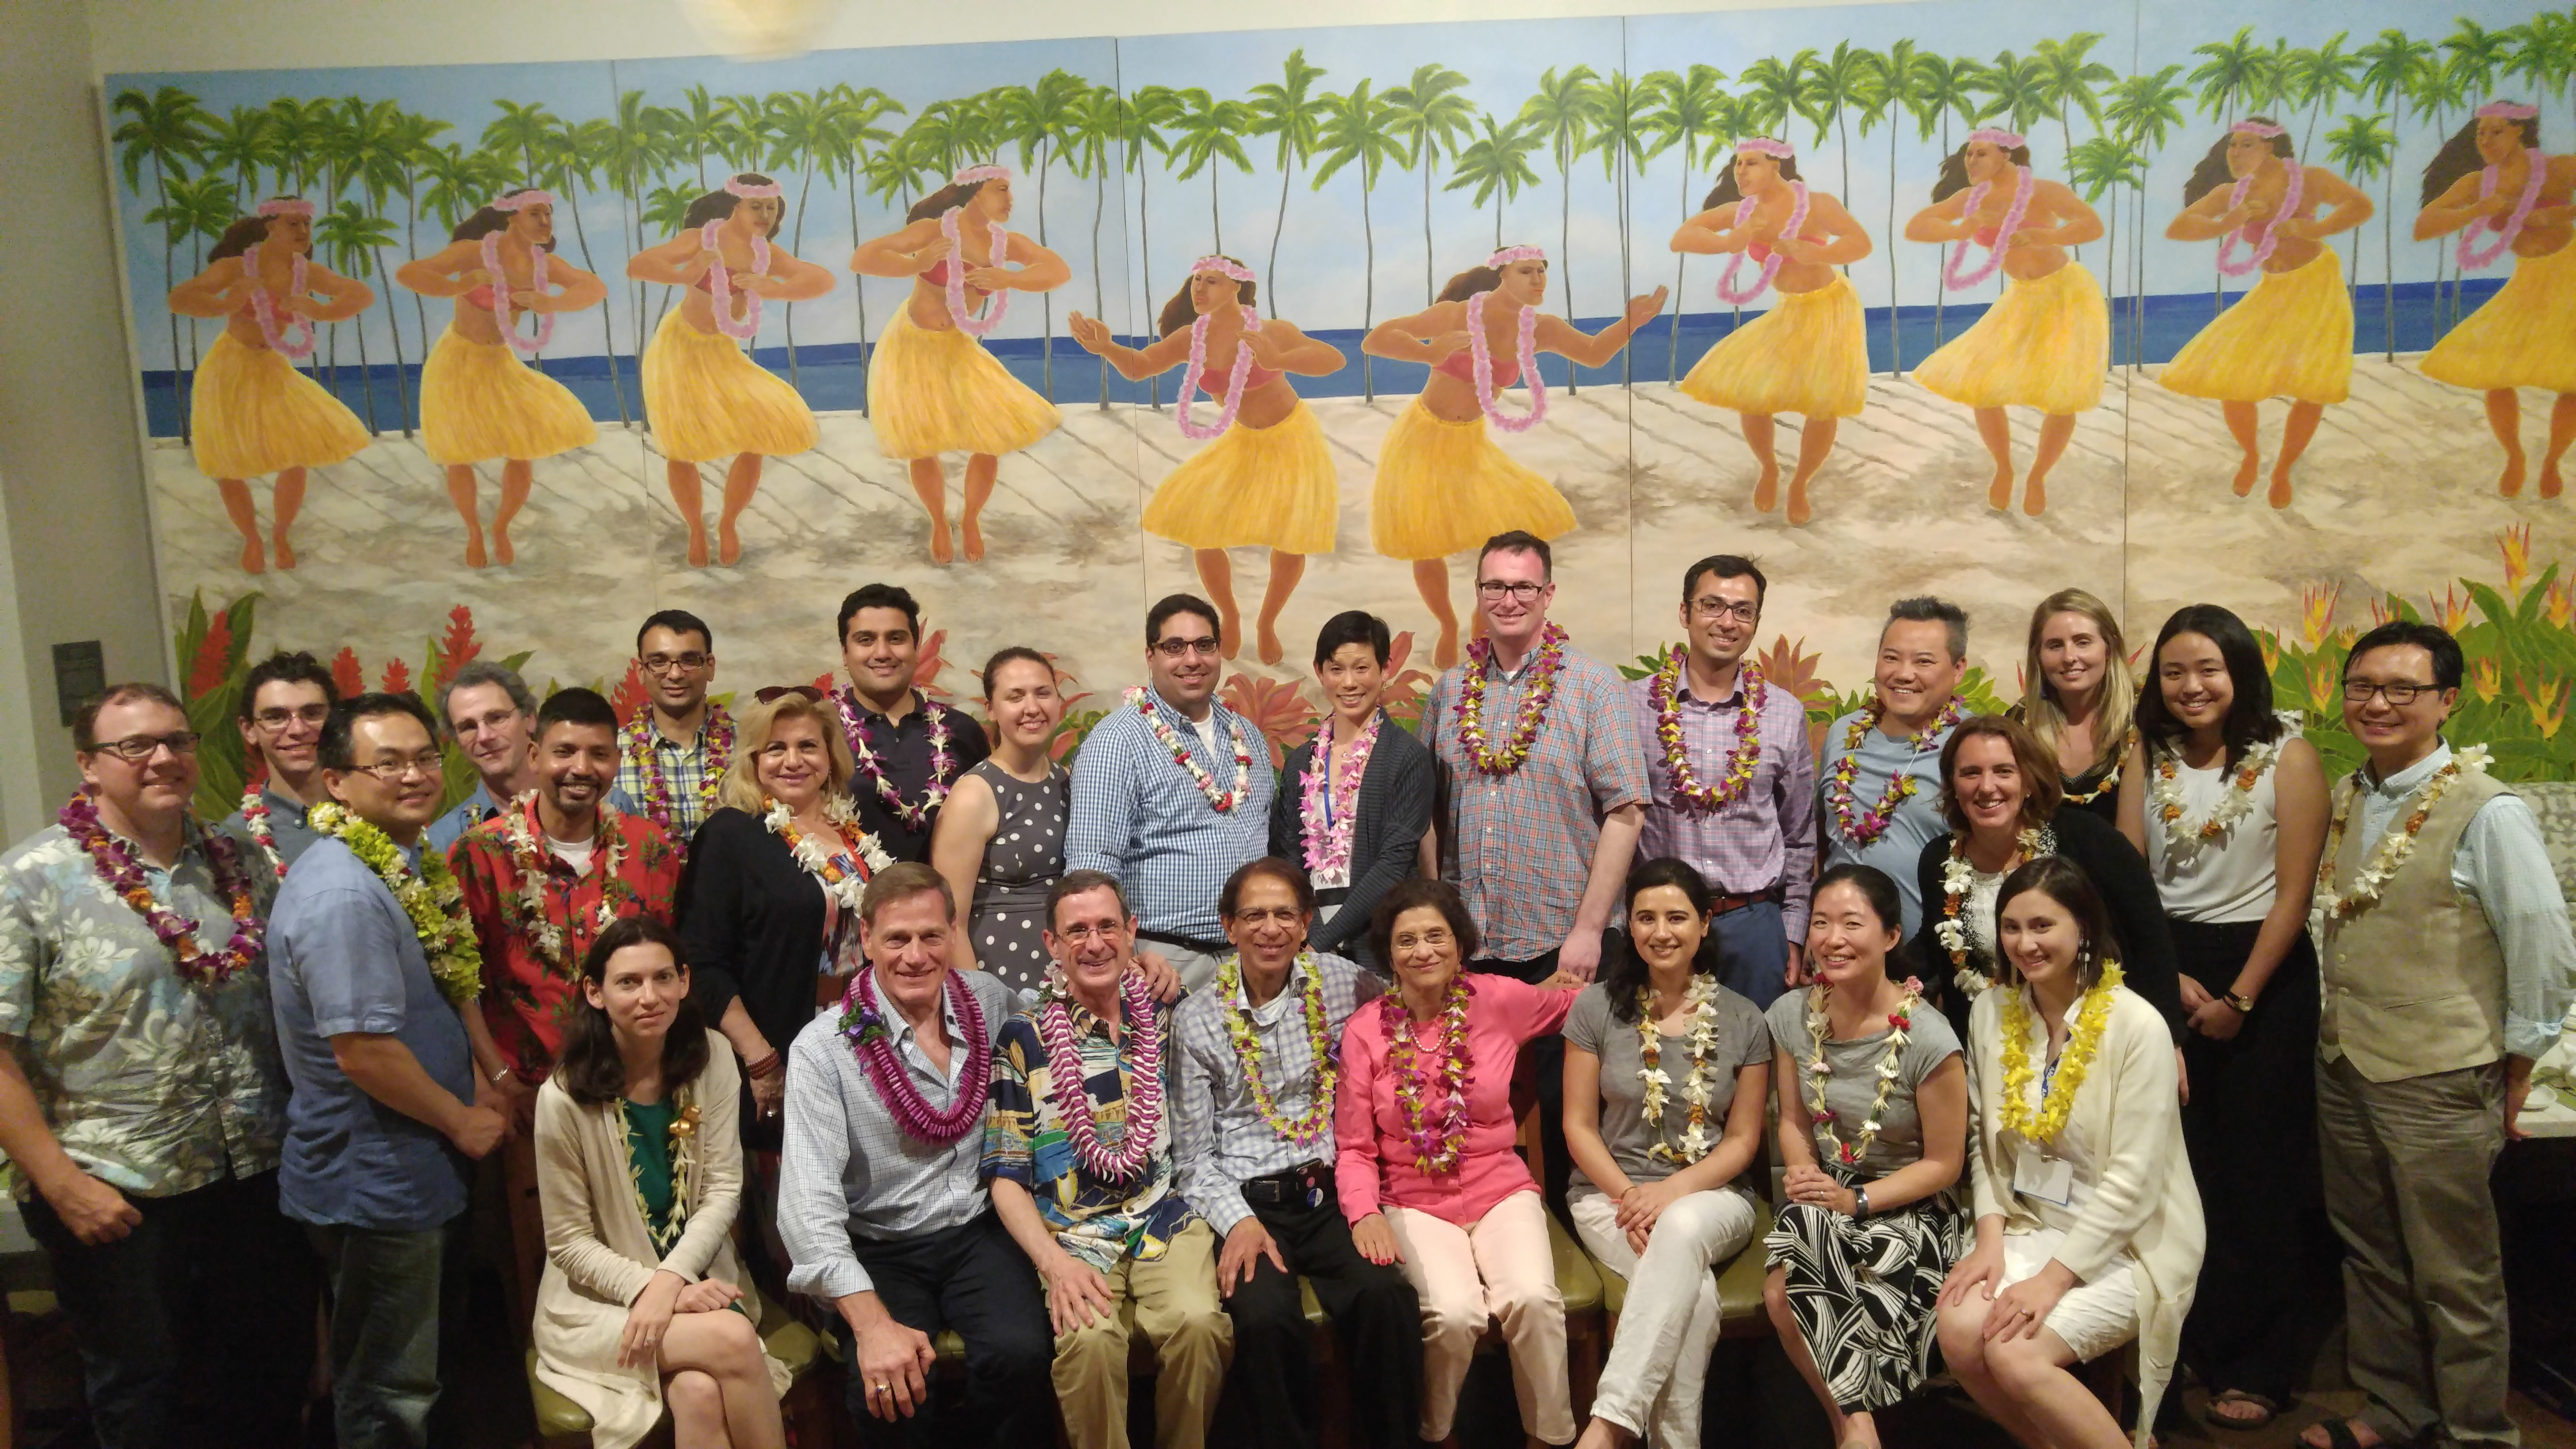 Fellowship Group in Hawaii